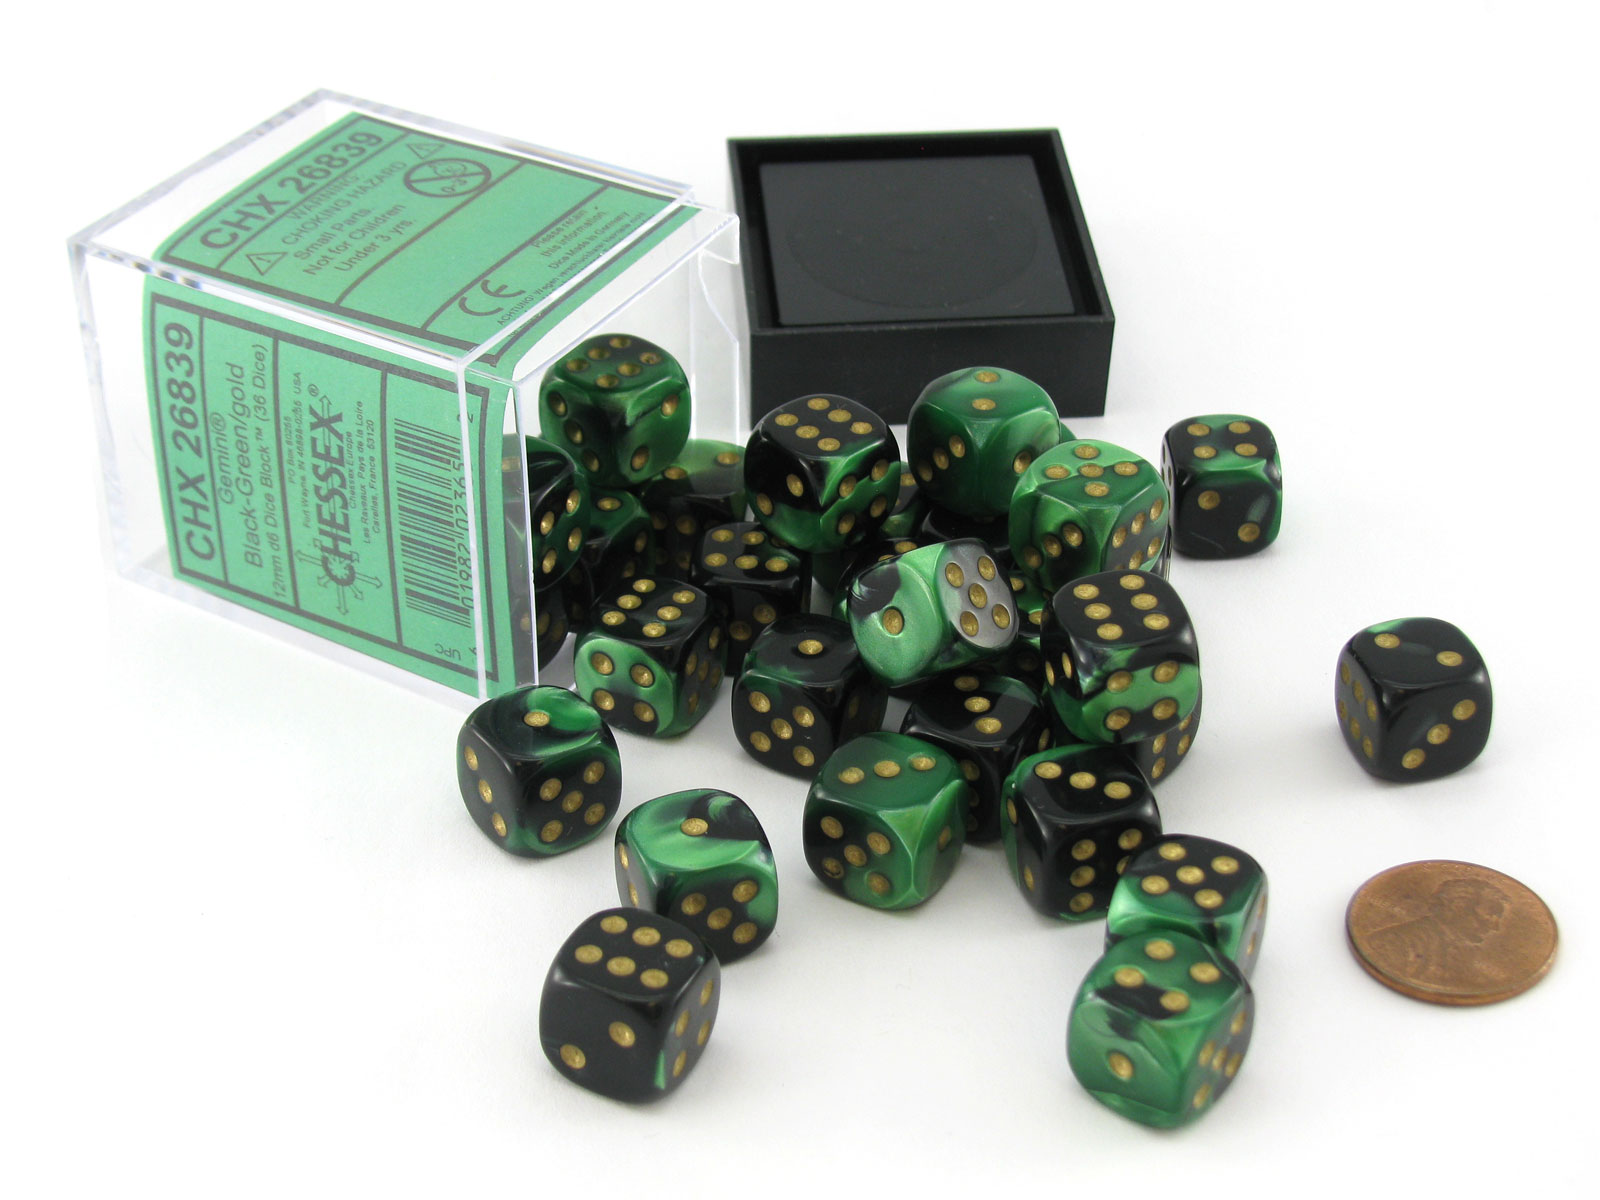 Blue-Green with Gold Pips 36 Dice Gemini 12mm D6 Chessex Dice Block